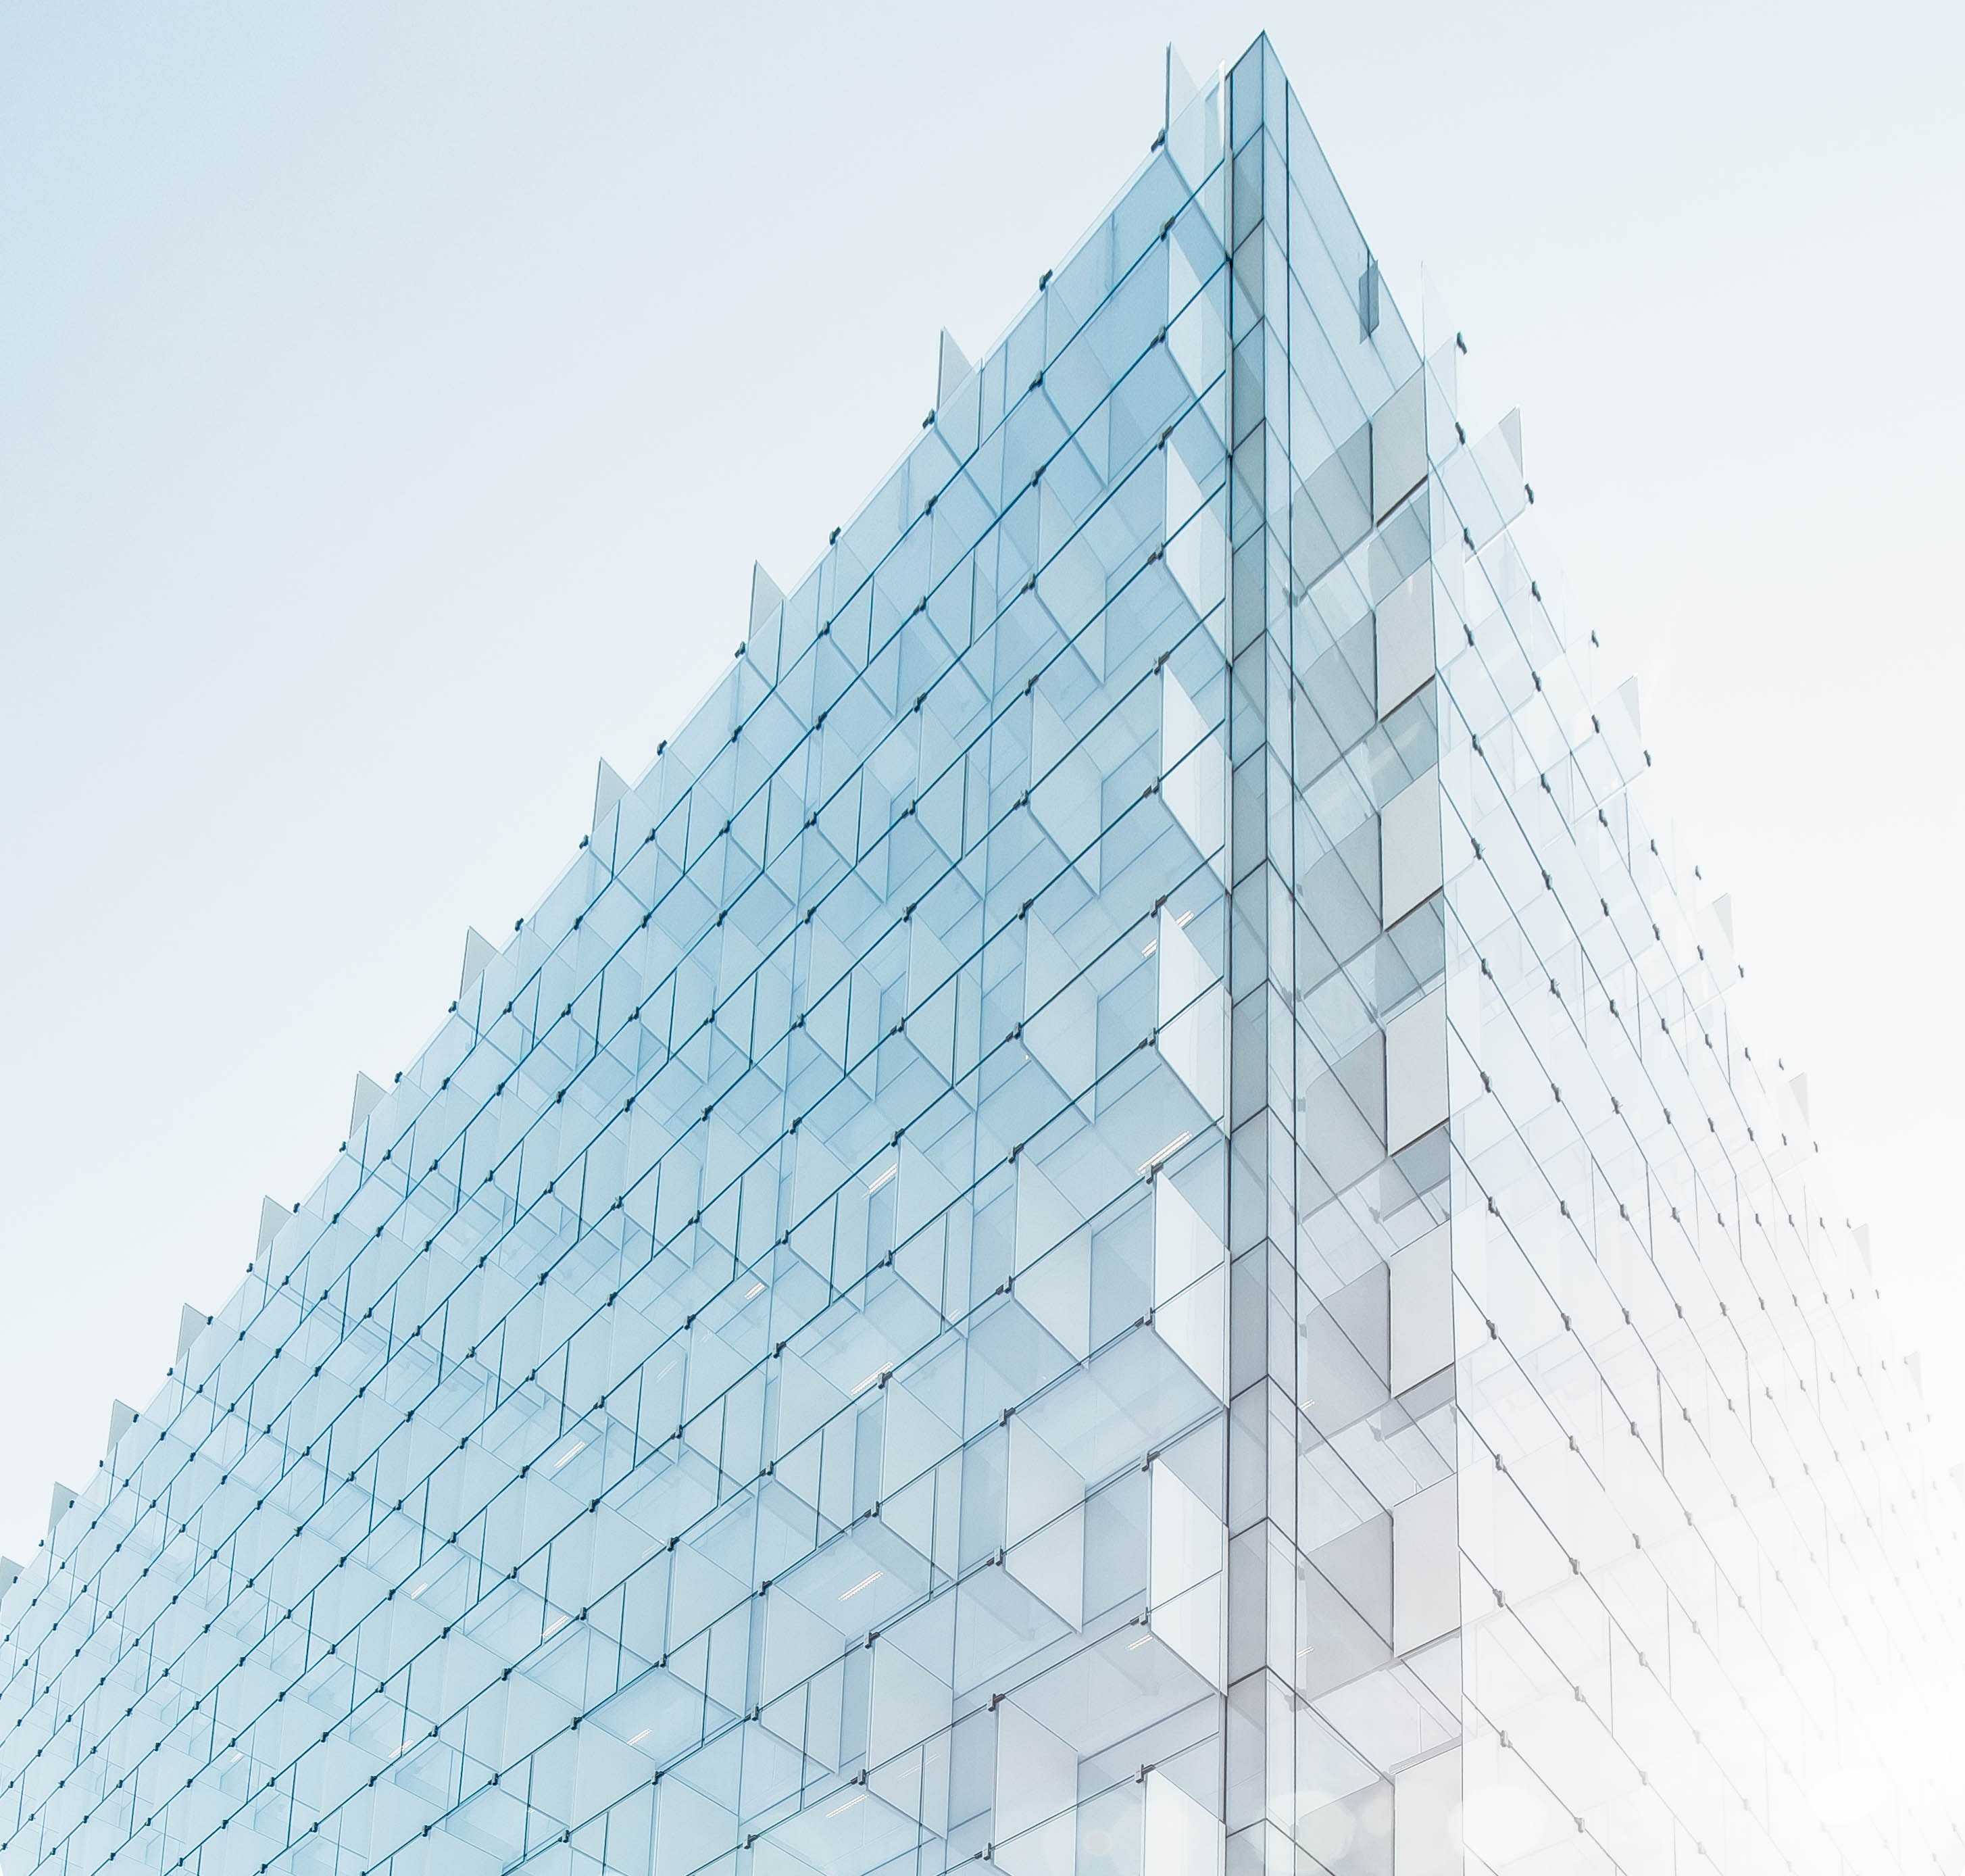 The edge of a building facade with glass plates on it in Madrid